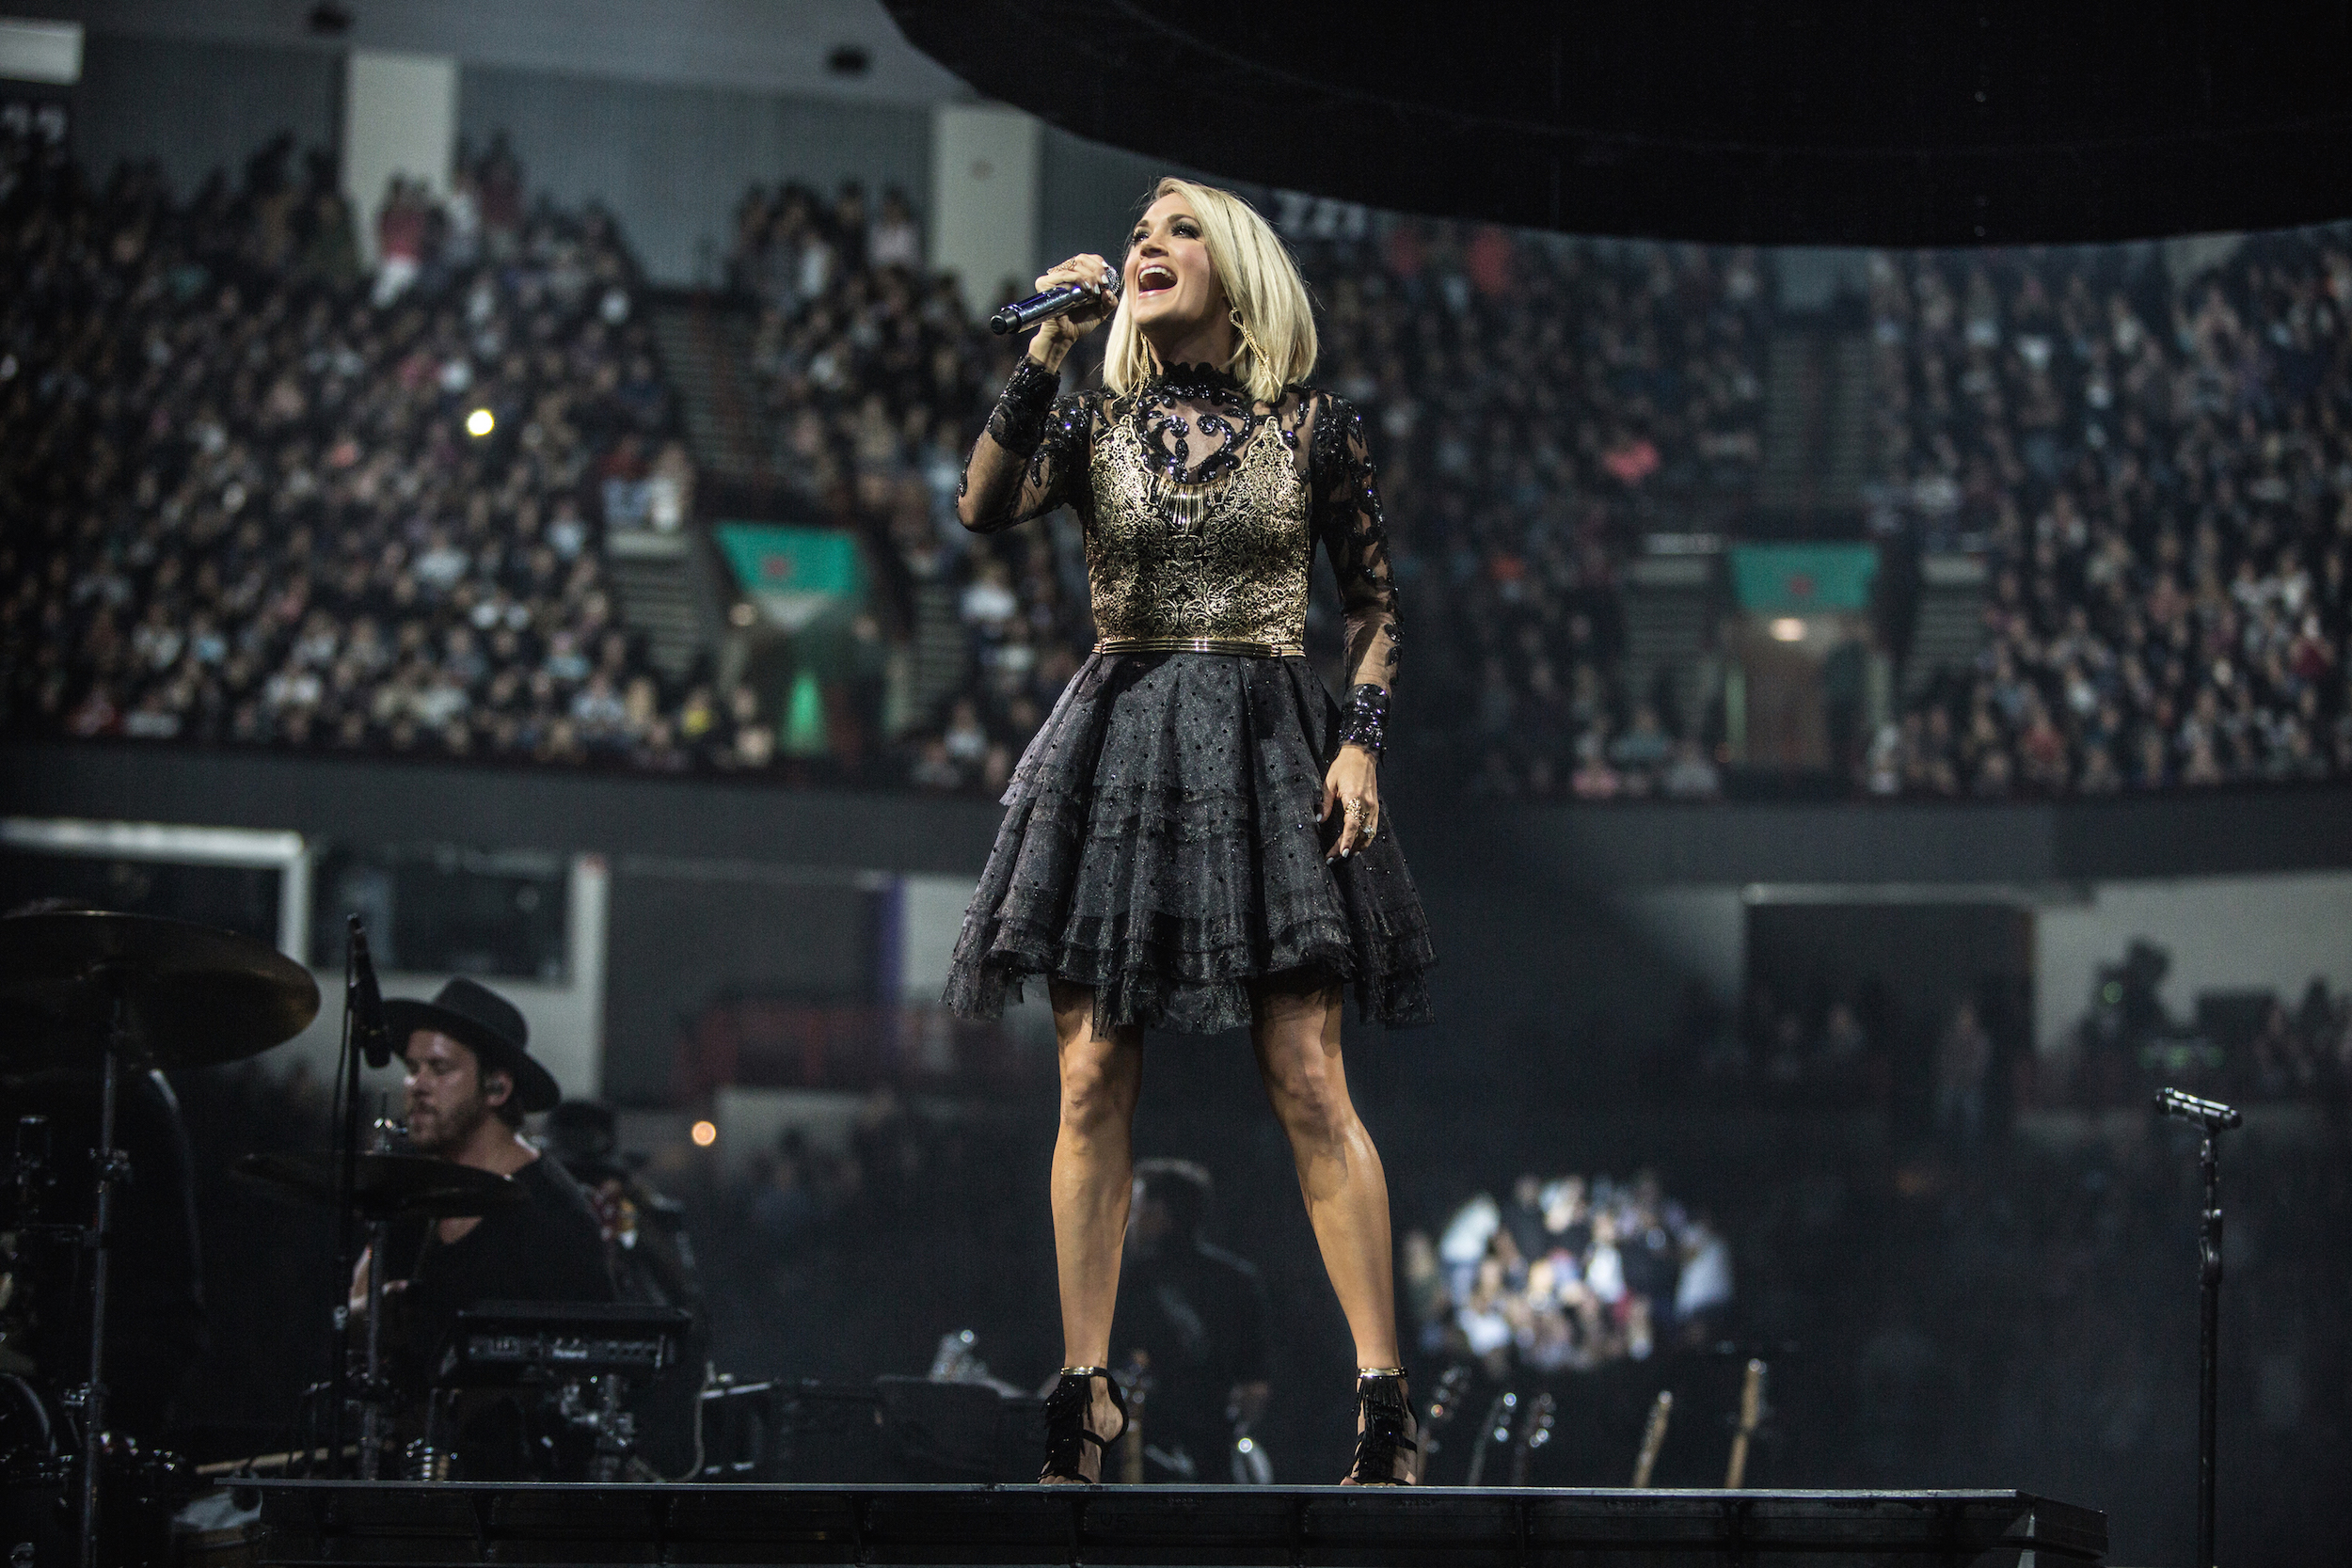 carrie underwood tour - HD2500×1667